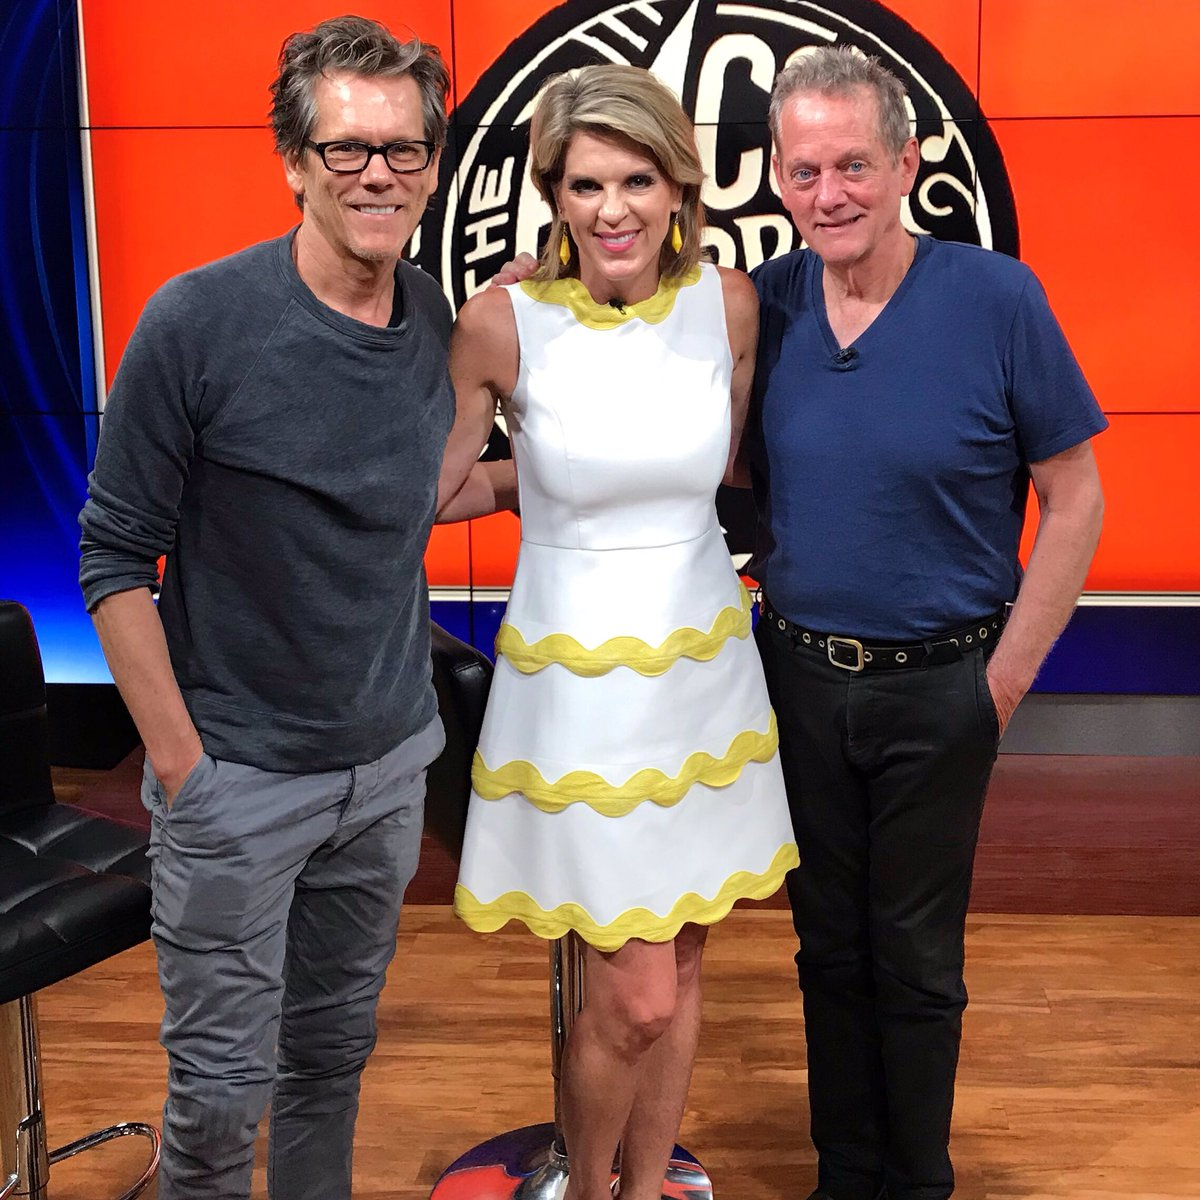 👀 who stopped by #gooddaydc before they hit the stage this weekend @thebirchmere thx @baconbrothers y'all rock! 🎶🎸 oh and check out @kevinbacon in his new @Showtime series #cityonahill